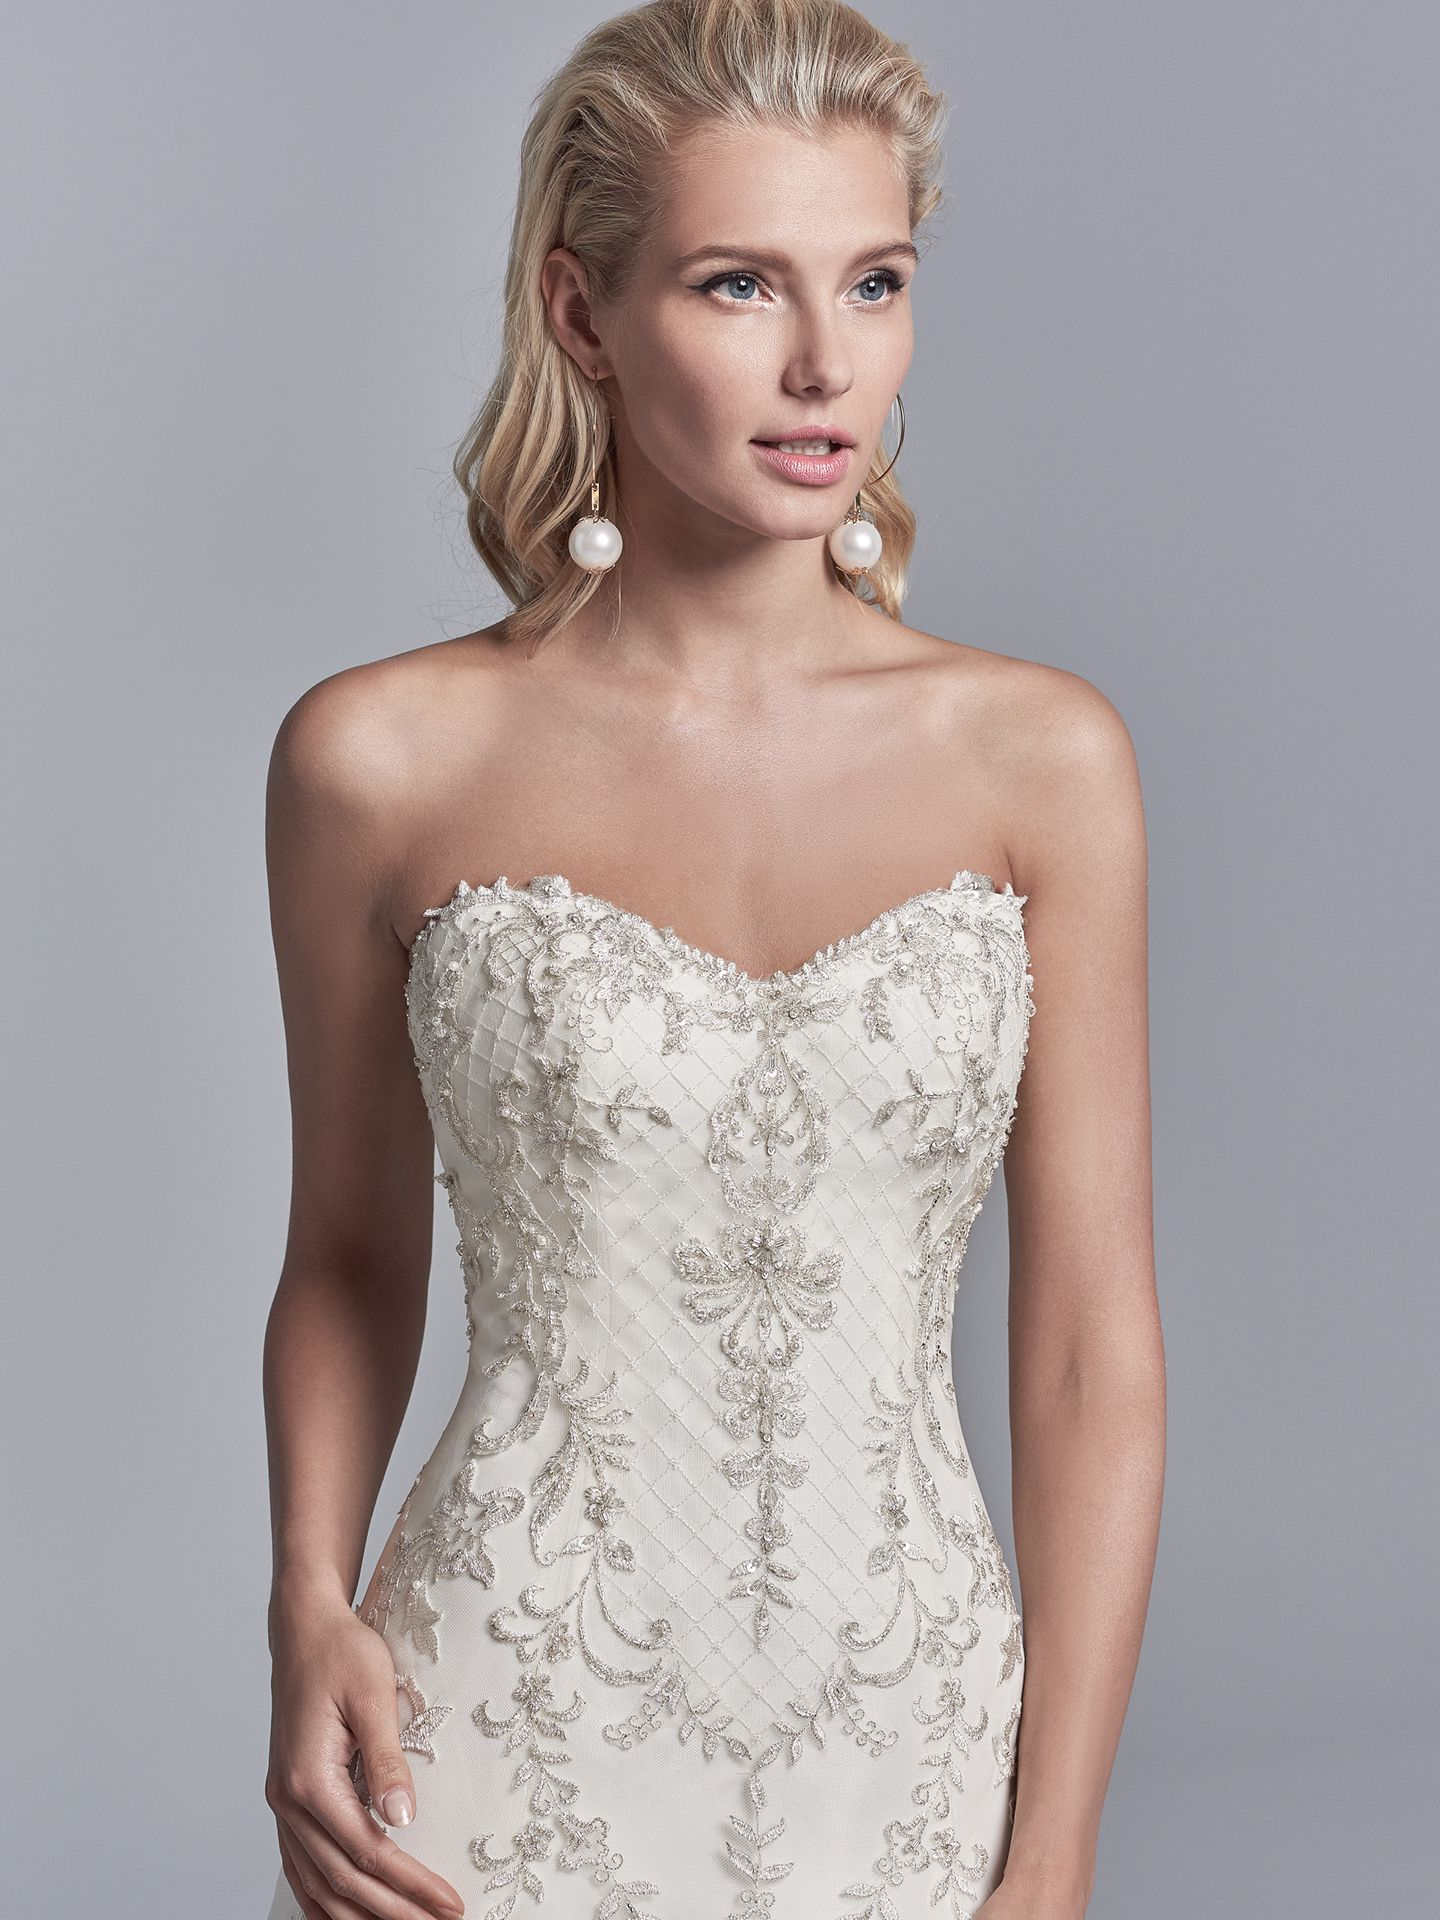 Granger by Sottero and Midgley. Embroidered lace motifs and Swarovski crystals dance over this tulle and Soft Shimmer Satin A-line wedding gown, featuring a strapless sweetheart neckline, illusion scoop back accented in beaded lace motifs, and crosshatch detail through the hemline. 10 Top-Pinned Sottero and Midgley Gowns of 2017.